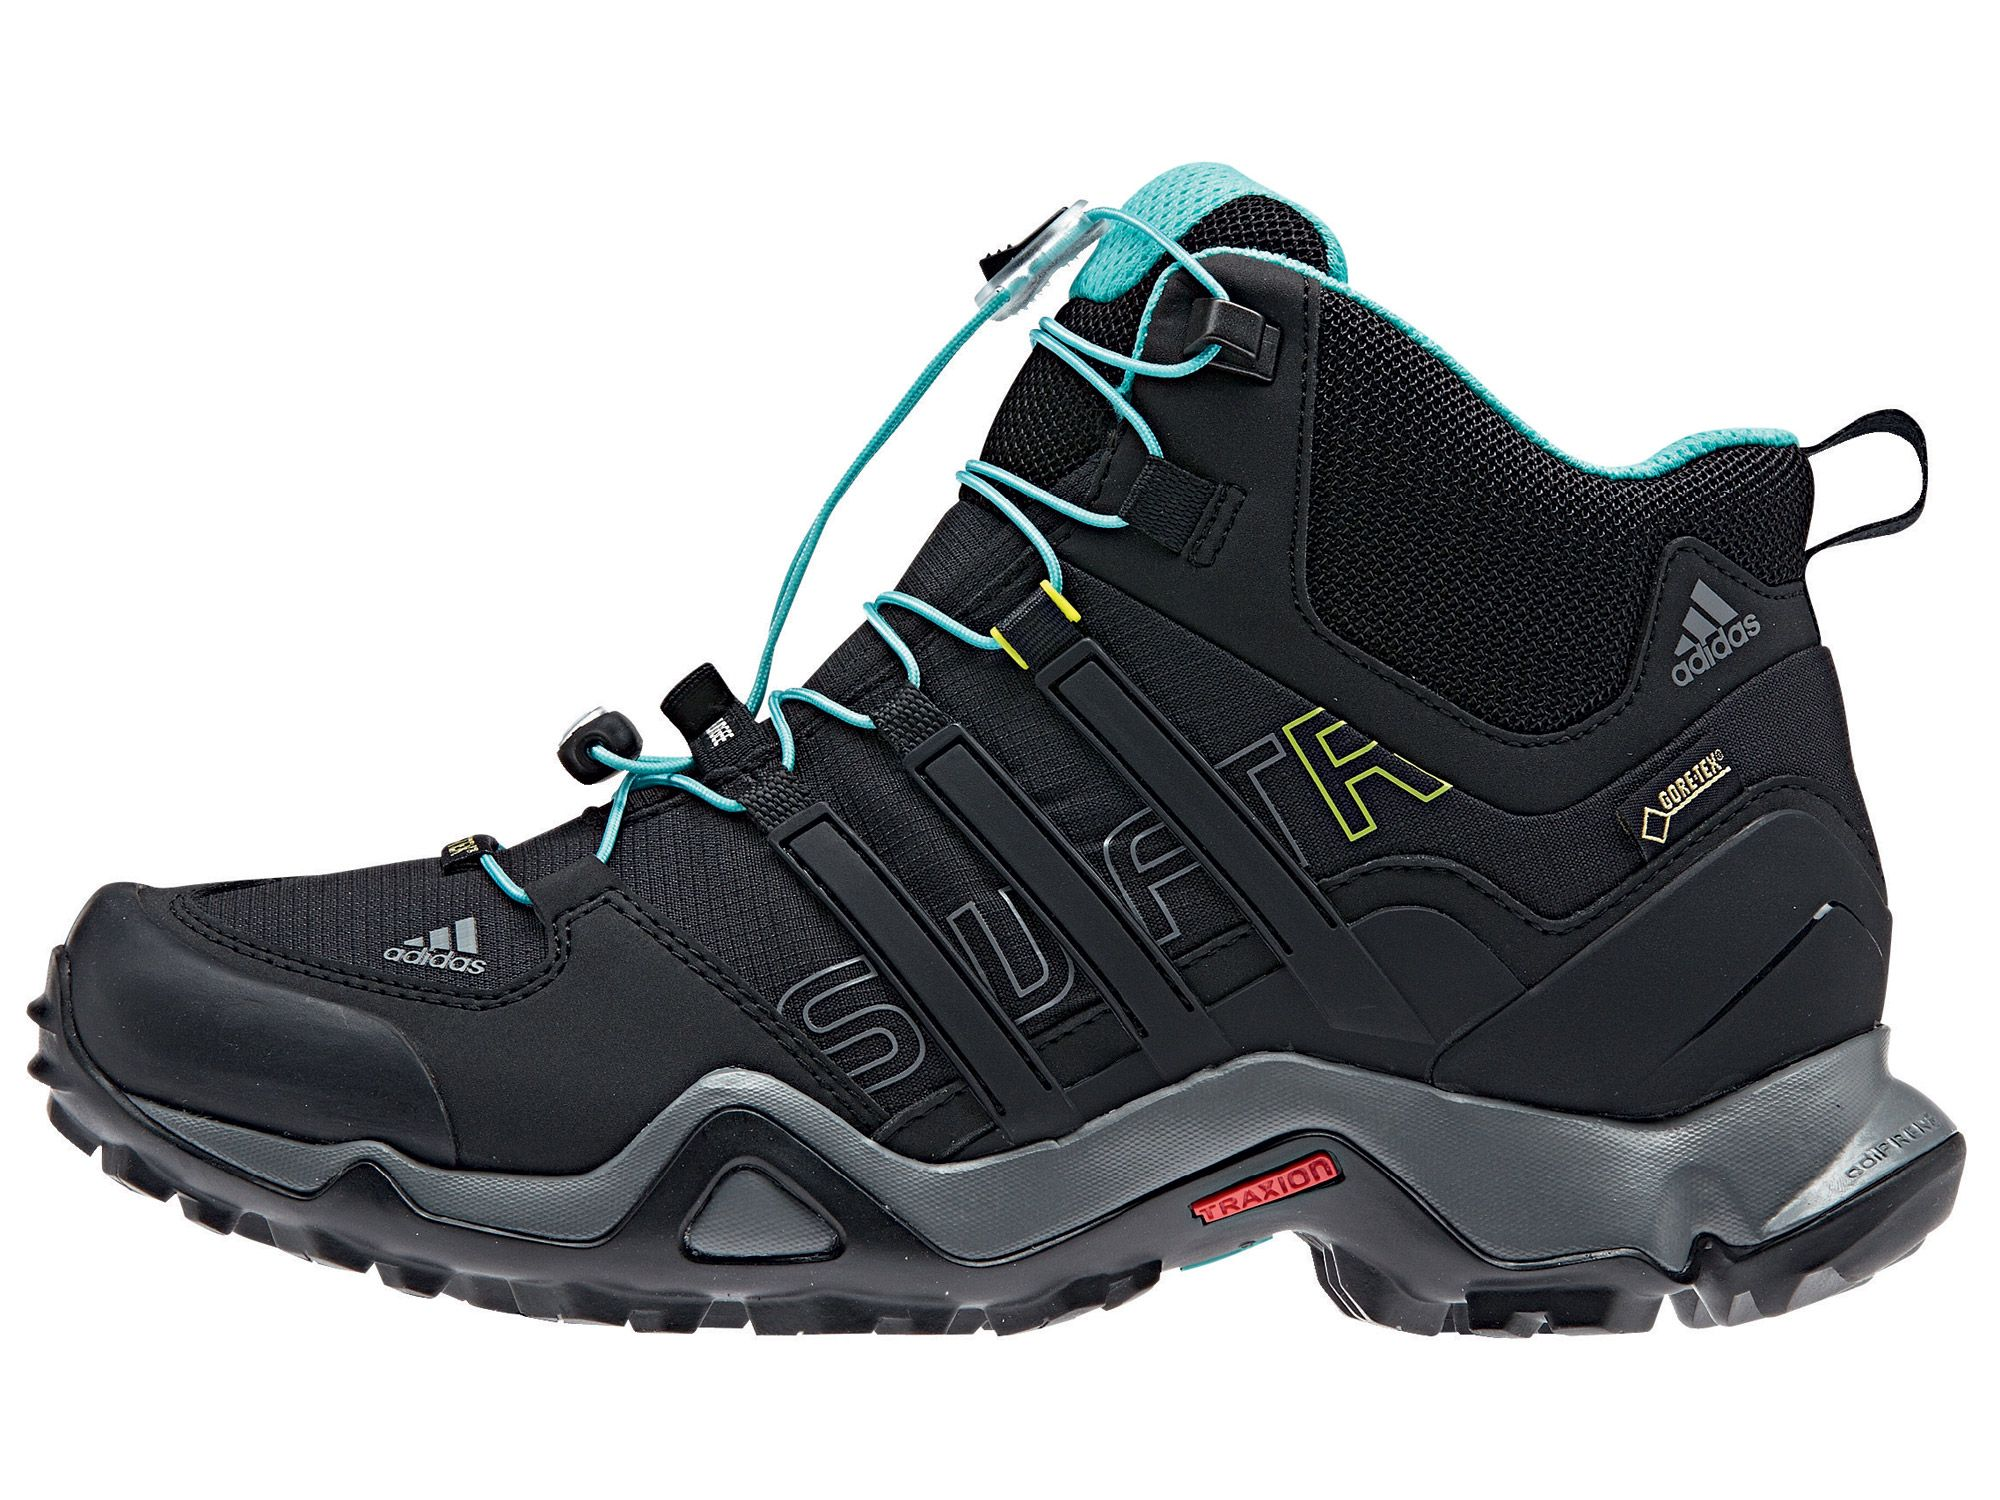 a14b41aa7 Buy Adidas - Women s Terrex Swift R Mid GTX - Multisport shoes online at  Bergfreunde.co.uk – NO SHIPPING COSTS